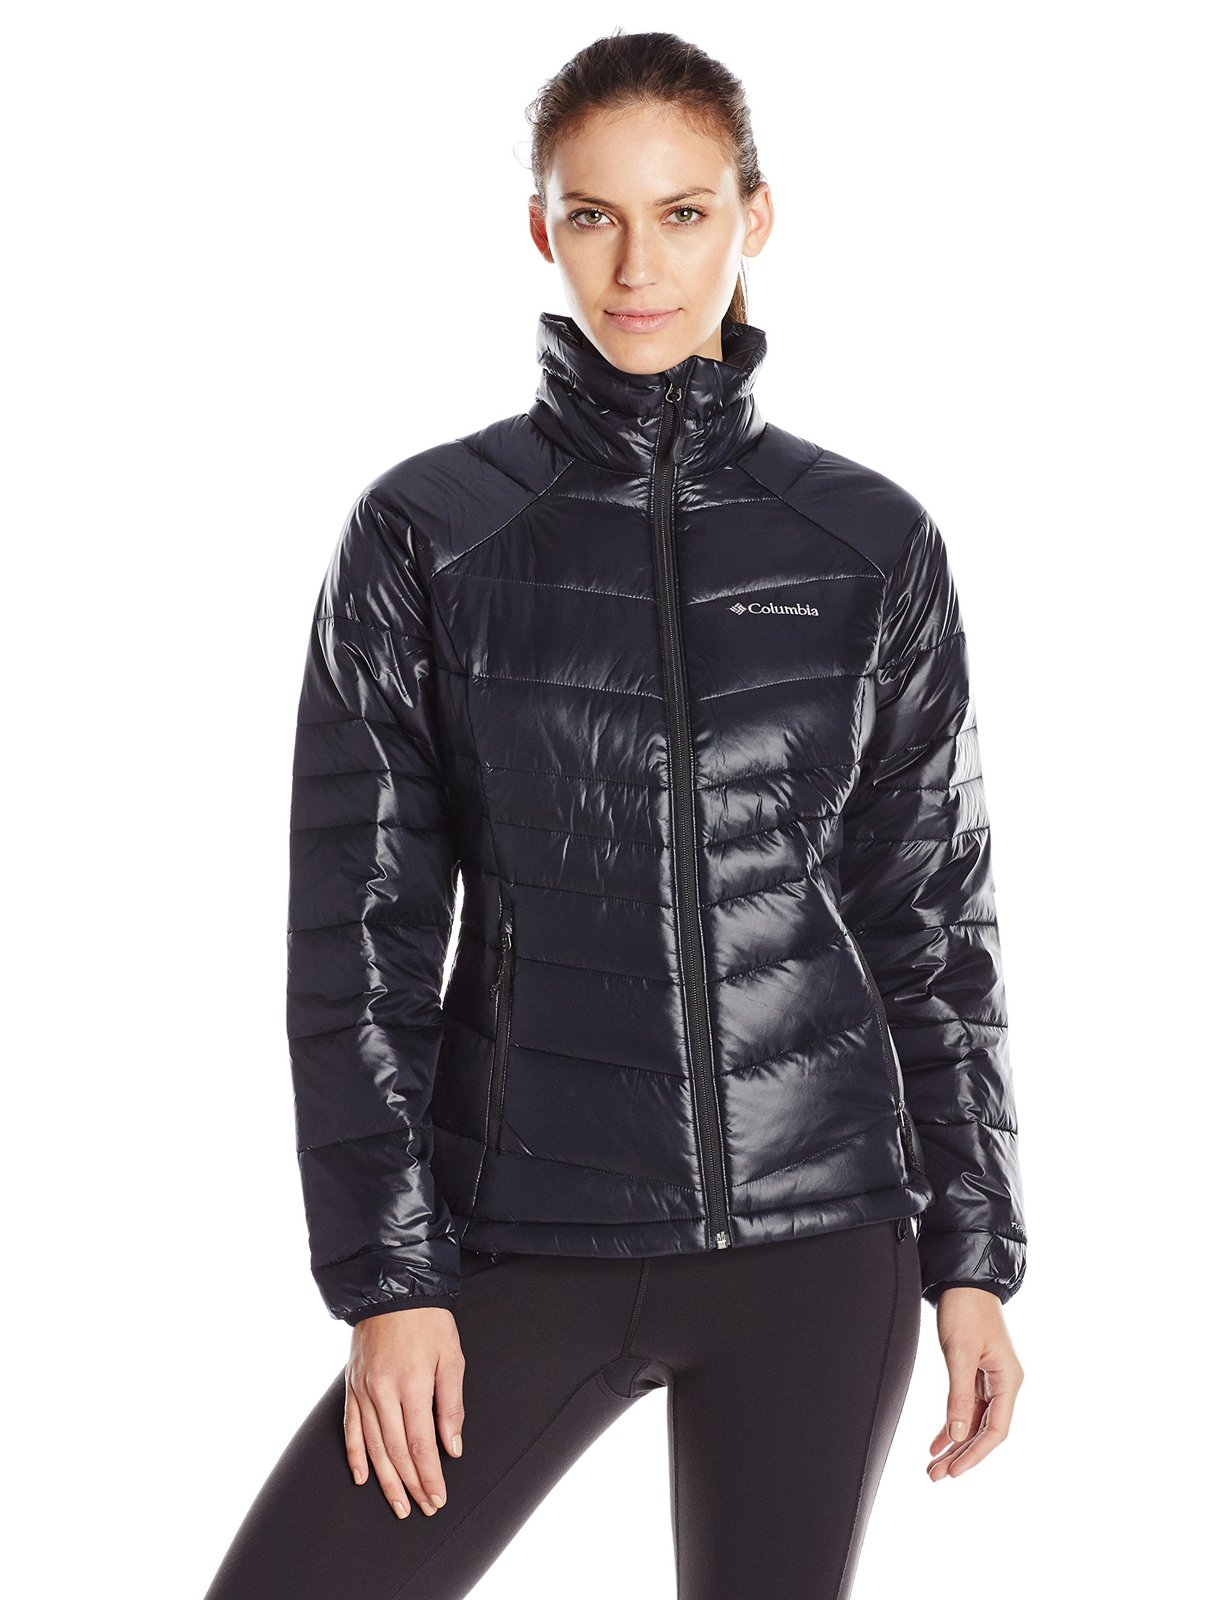 Columbia Women's Gold 650 TurboDown Radial Down Jacket, Large, Black